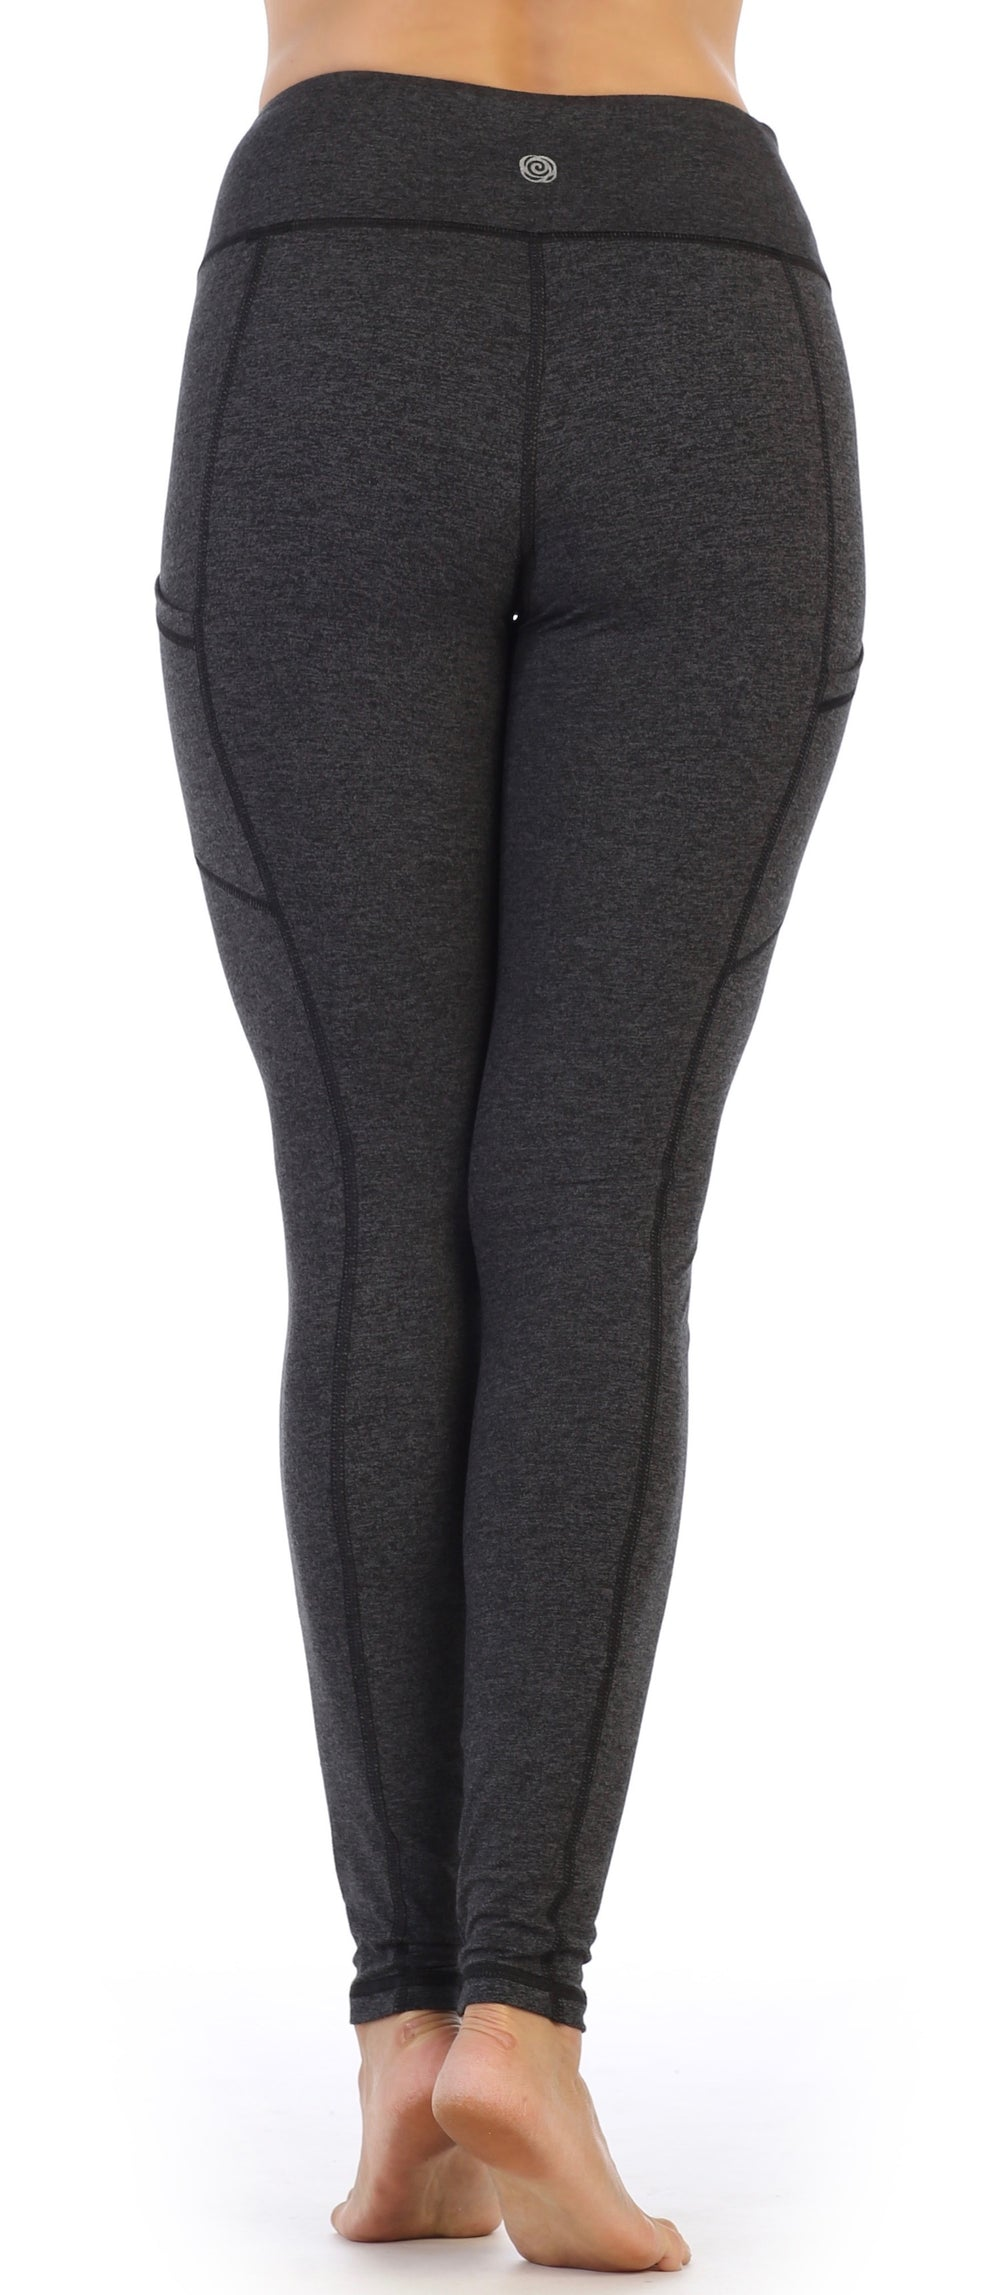 Dark Heather Charcoal-Women's Full Length Pocket Compression Leggings High Waisted-back